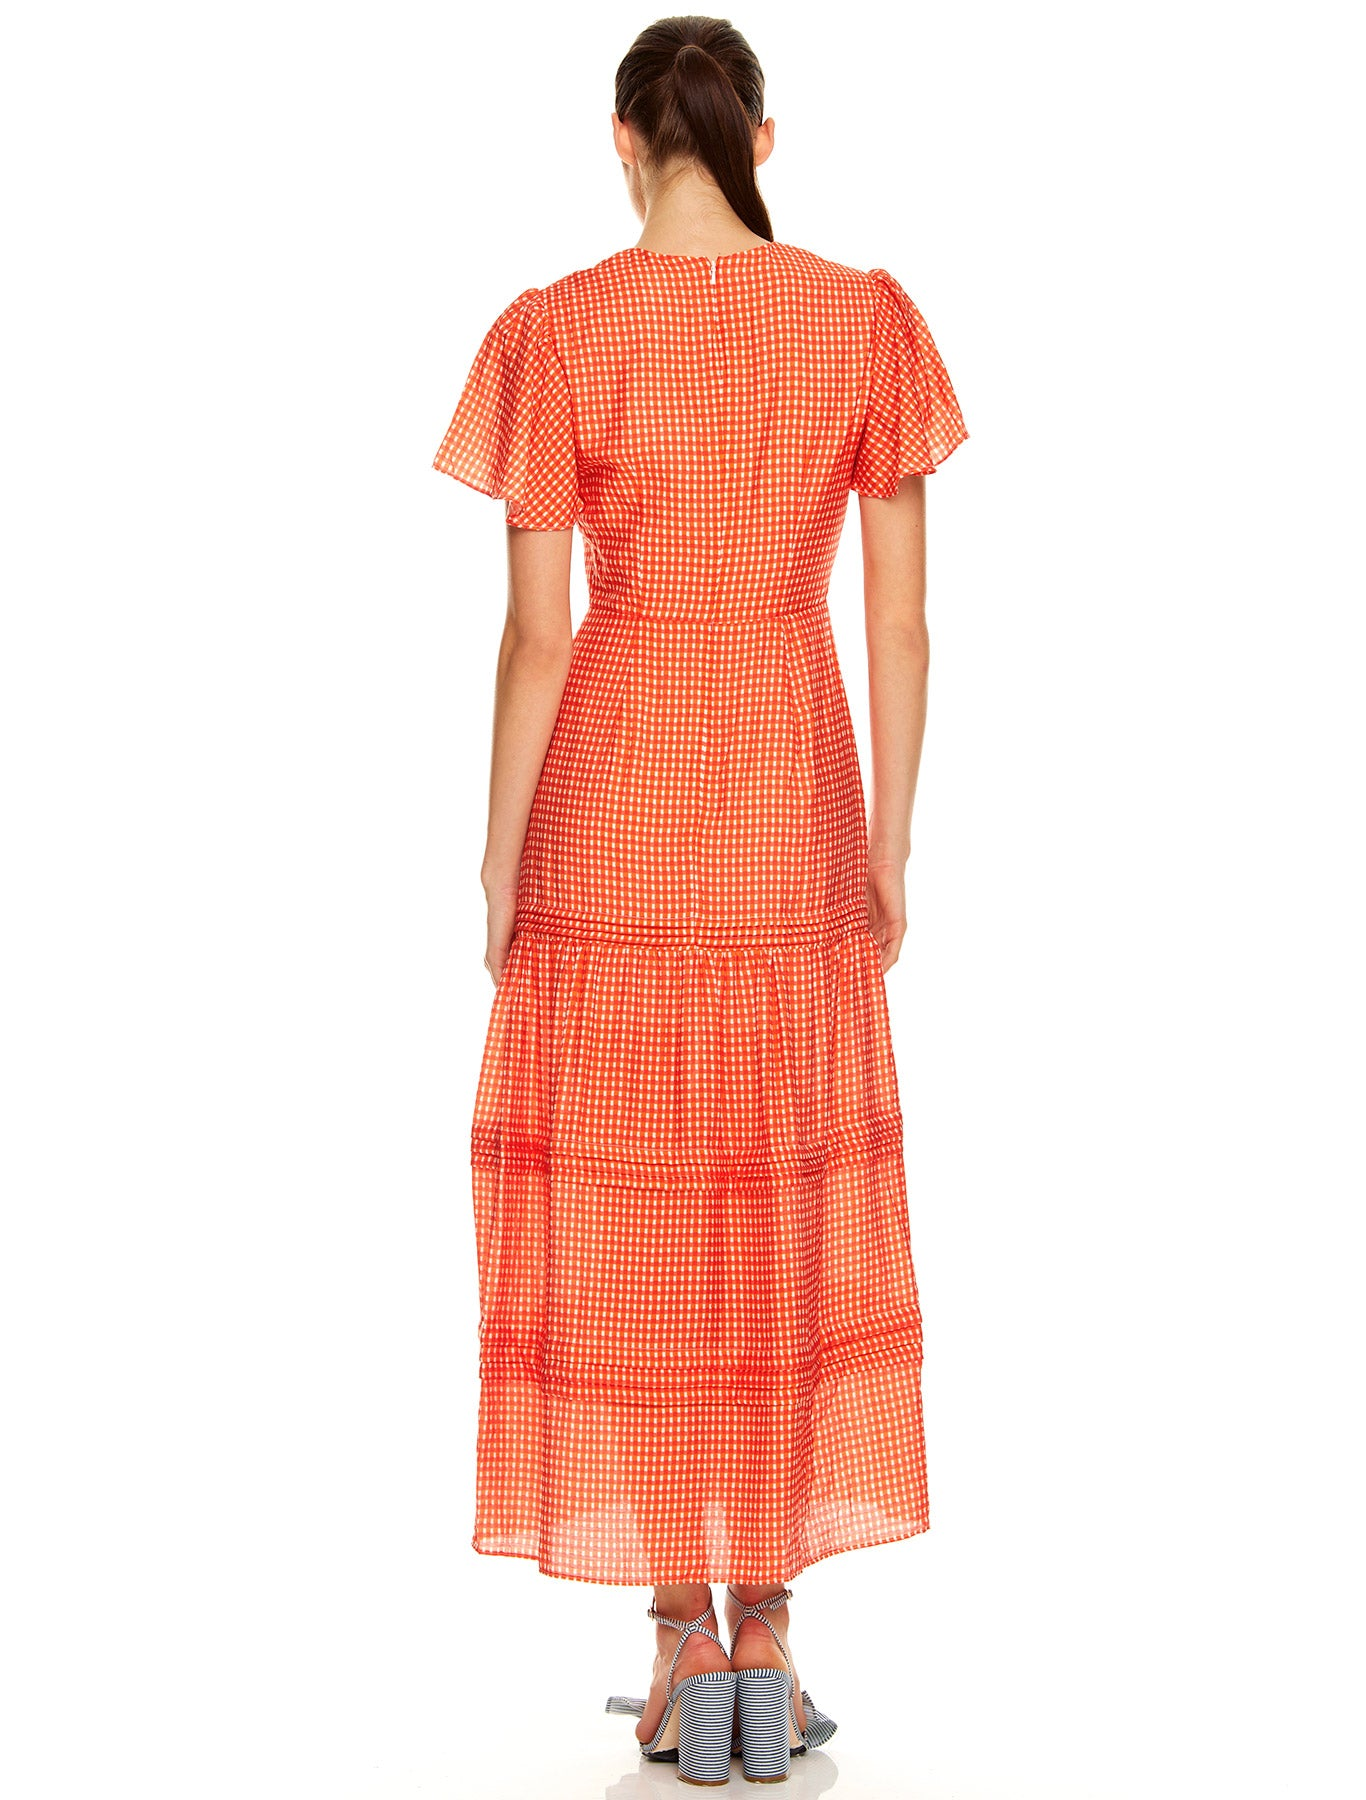 HONEY HUE MIDI DRESS